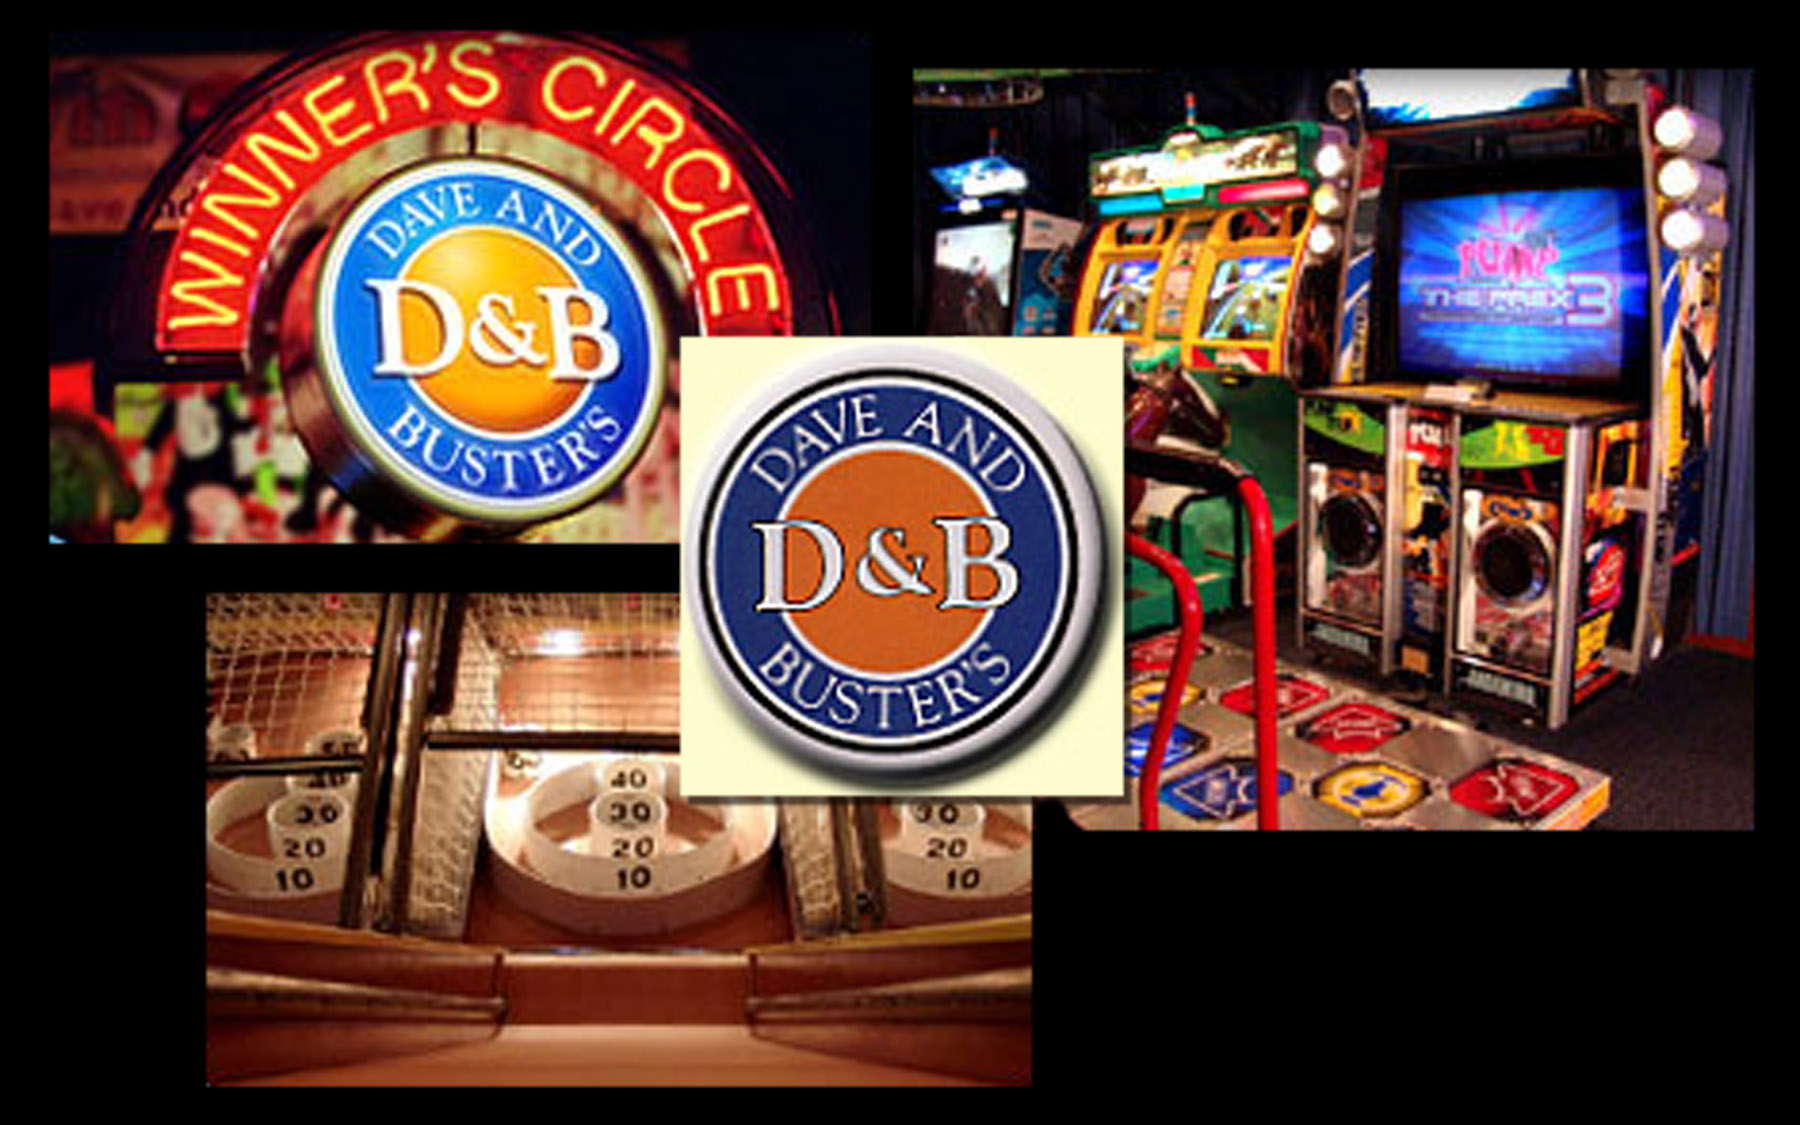 Dave & Buster's in Homestead, PA